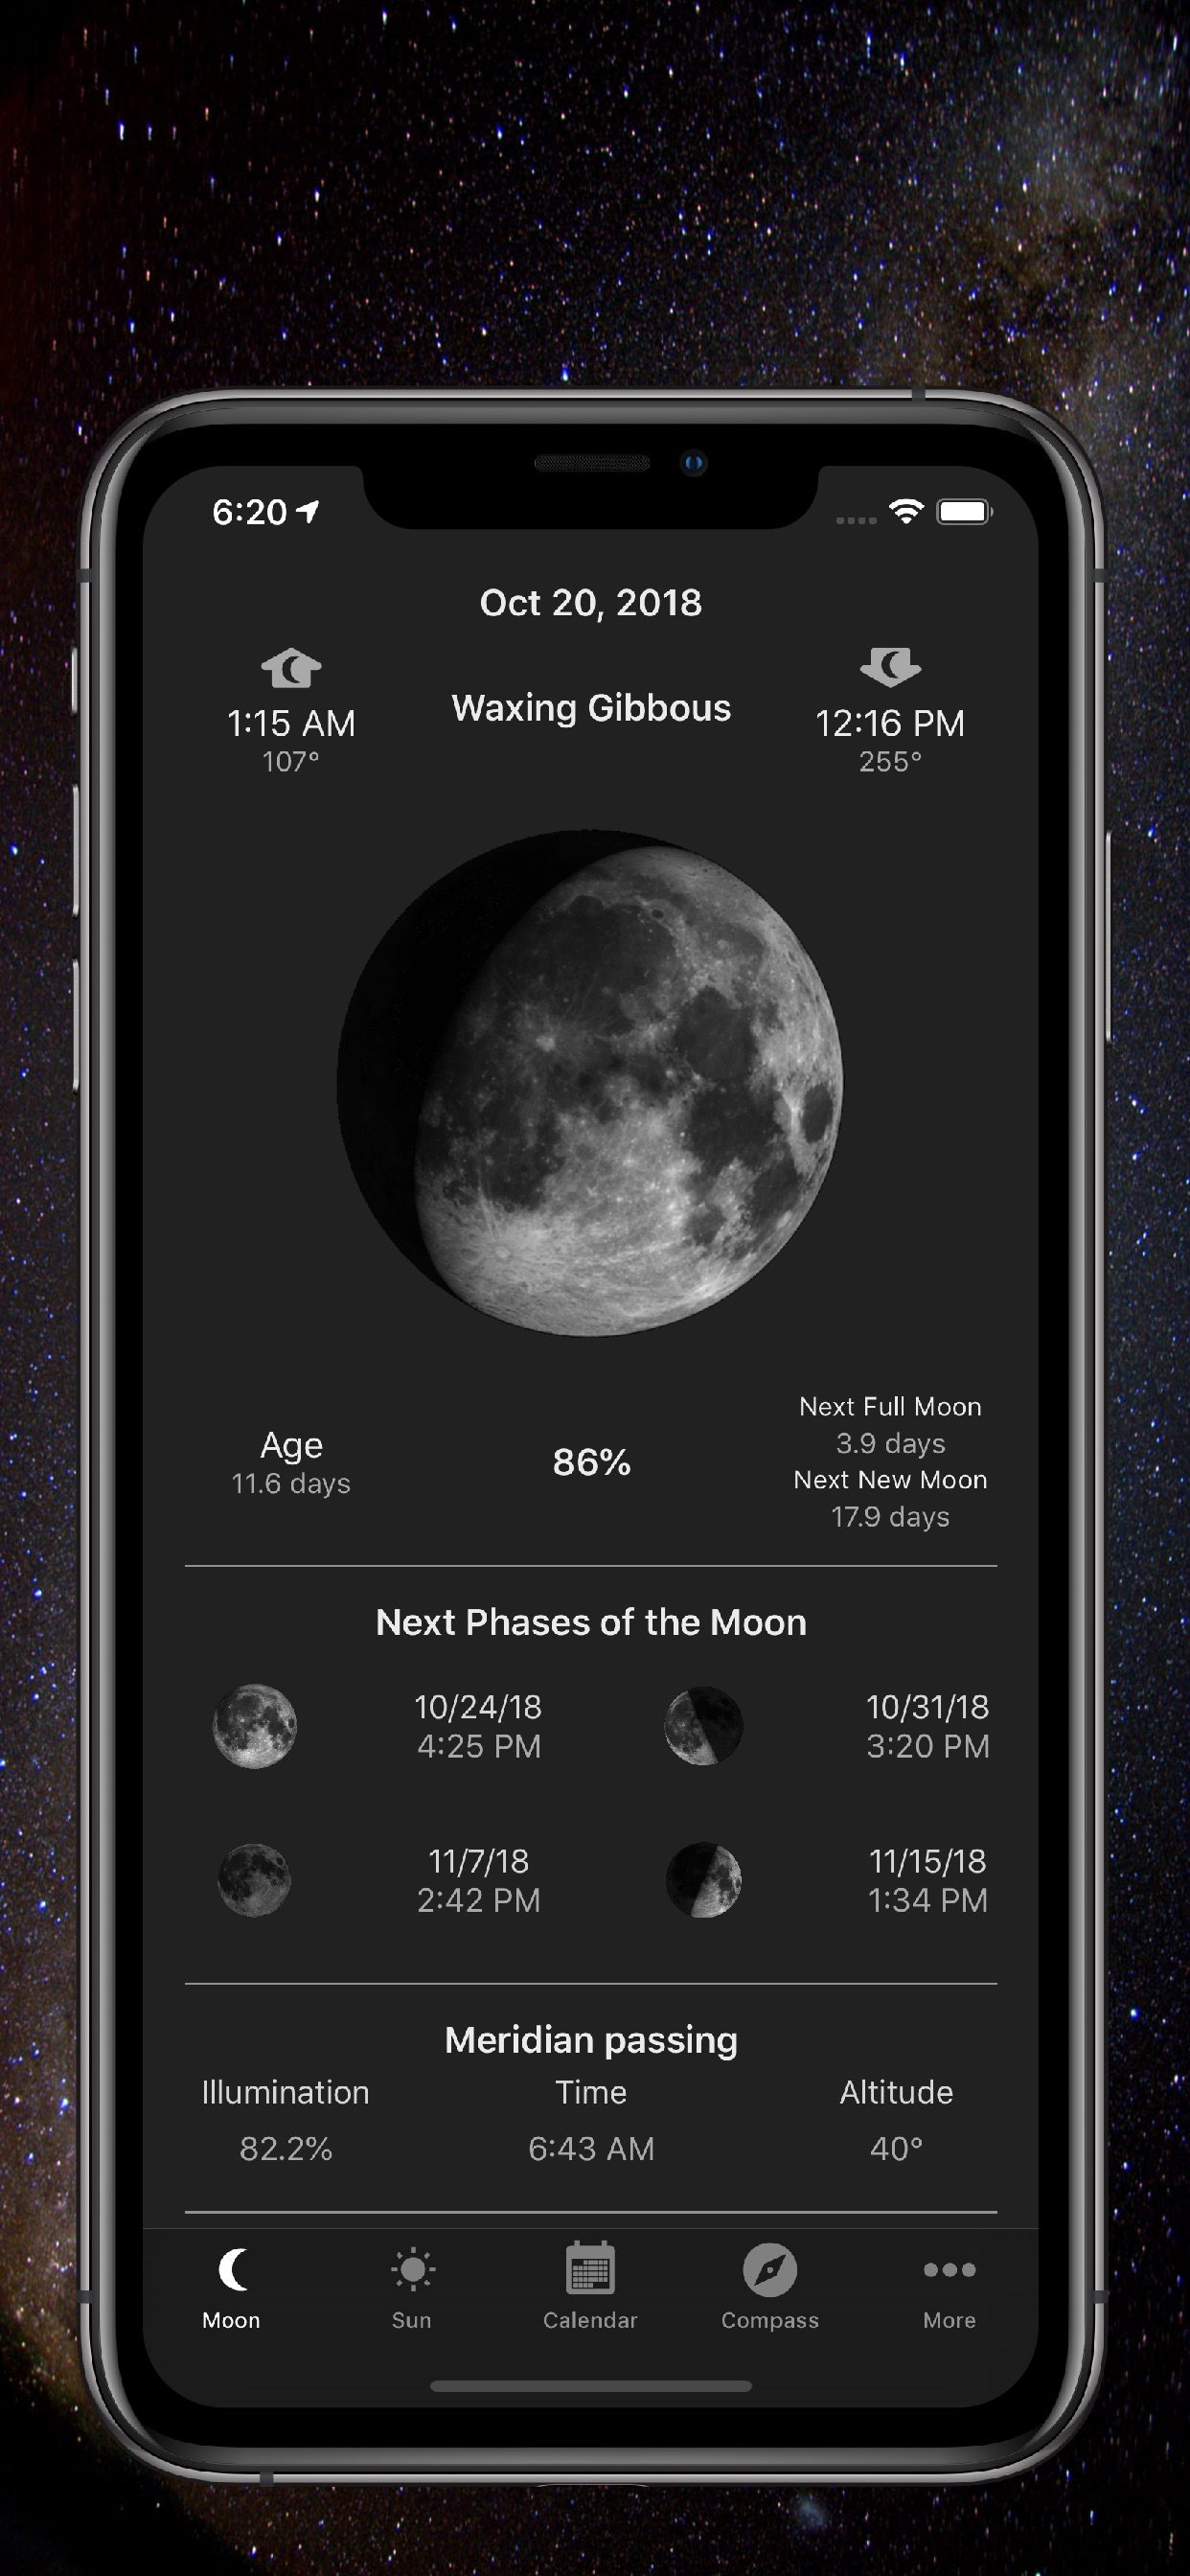 Moon Phase Calendar & Compass fos iOS